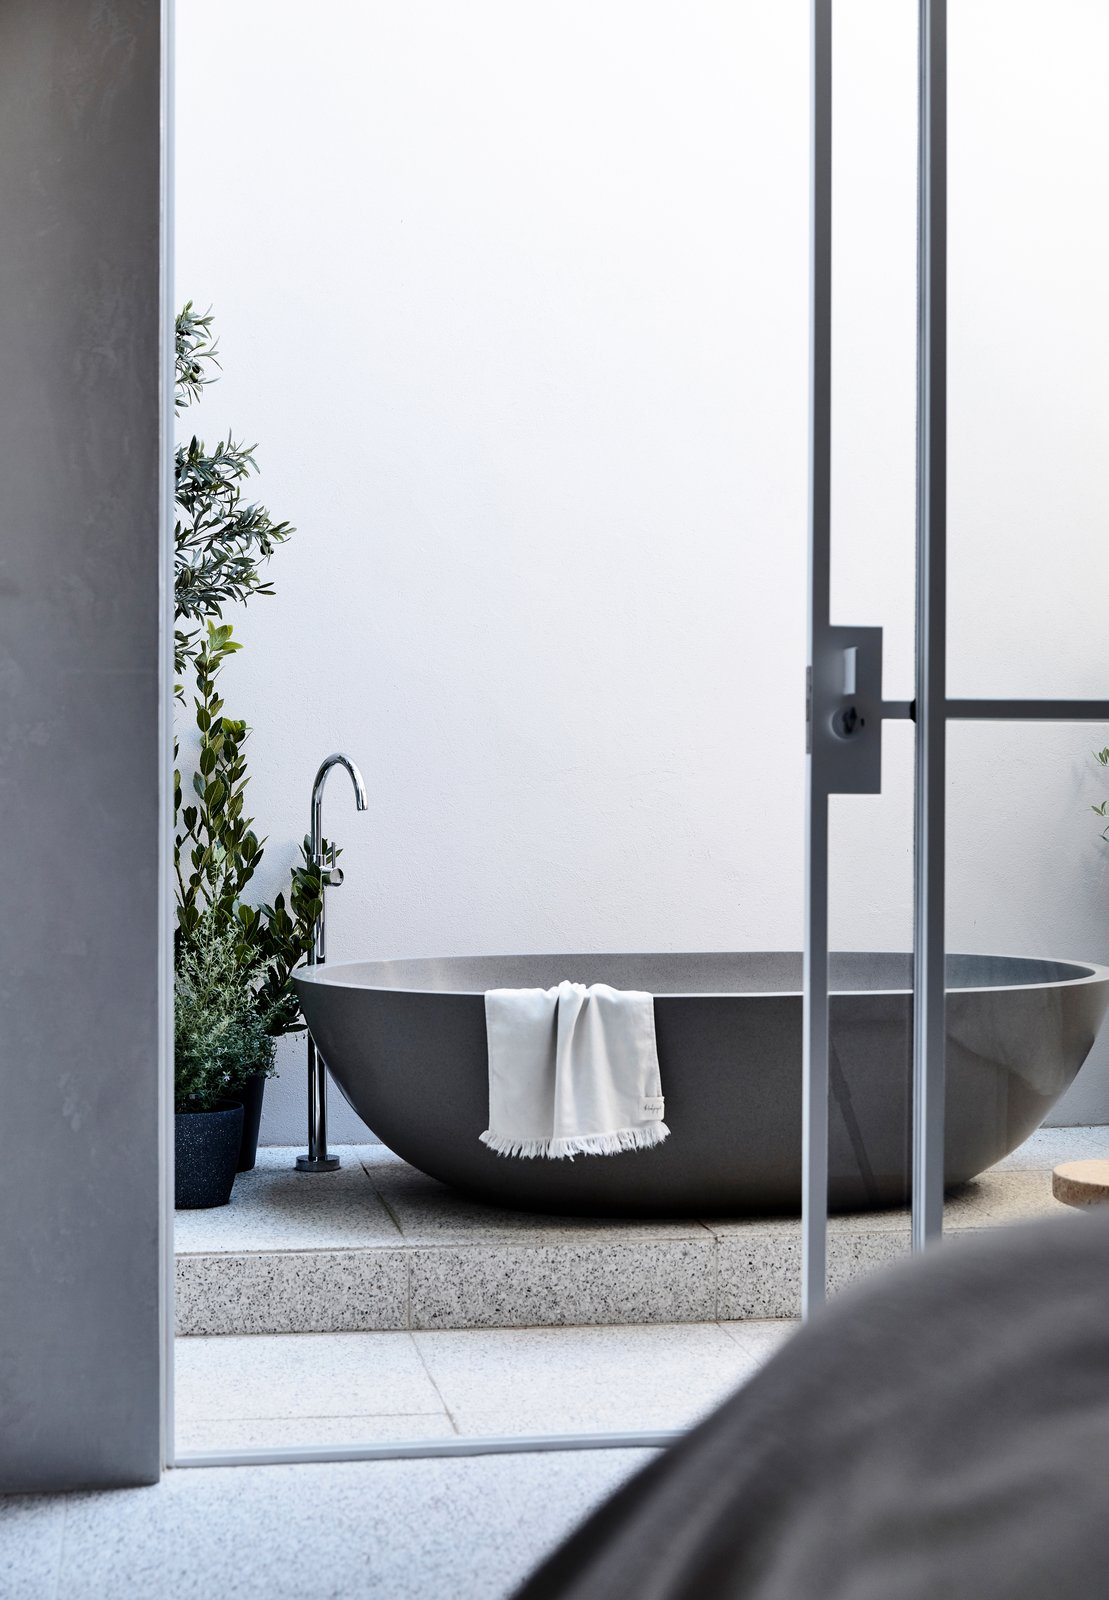 Bath Room, Terrazzo Floor, Freestanding Tub, and Soaking Tub An outdoor bathing area adjoining the master bedroom was a unique request from the clients. Stone tub and terrazzo pavers  Photos from Before & After: A 1930s Church in Melbourne Gets a Dramatic Conversion